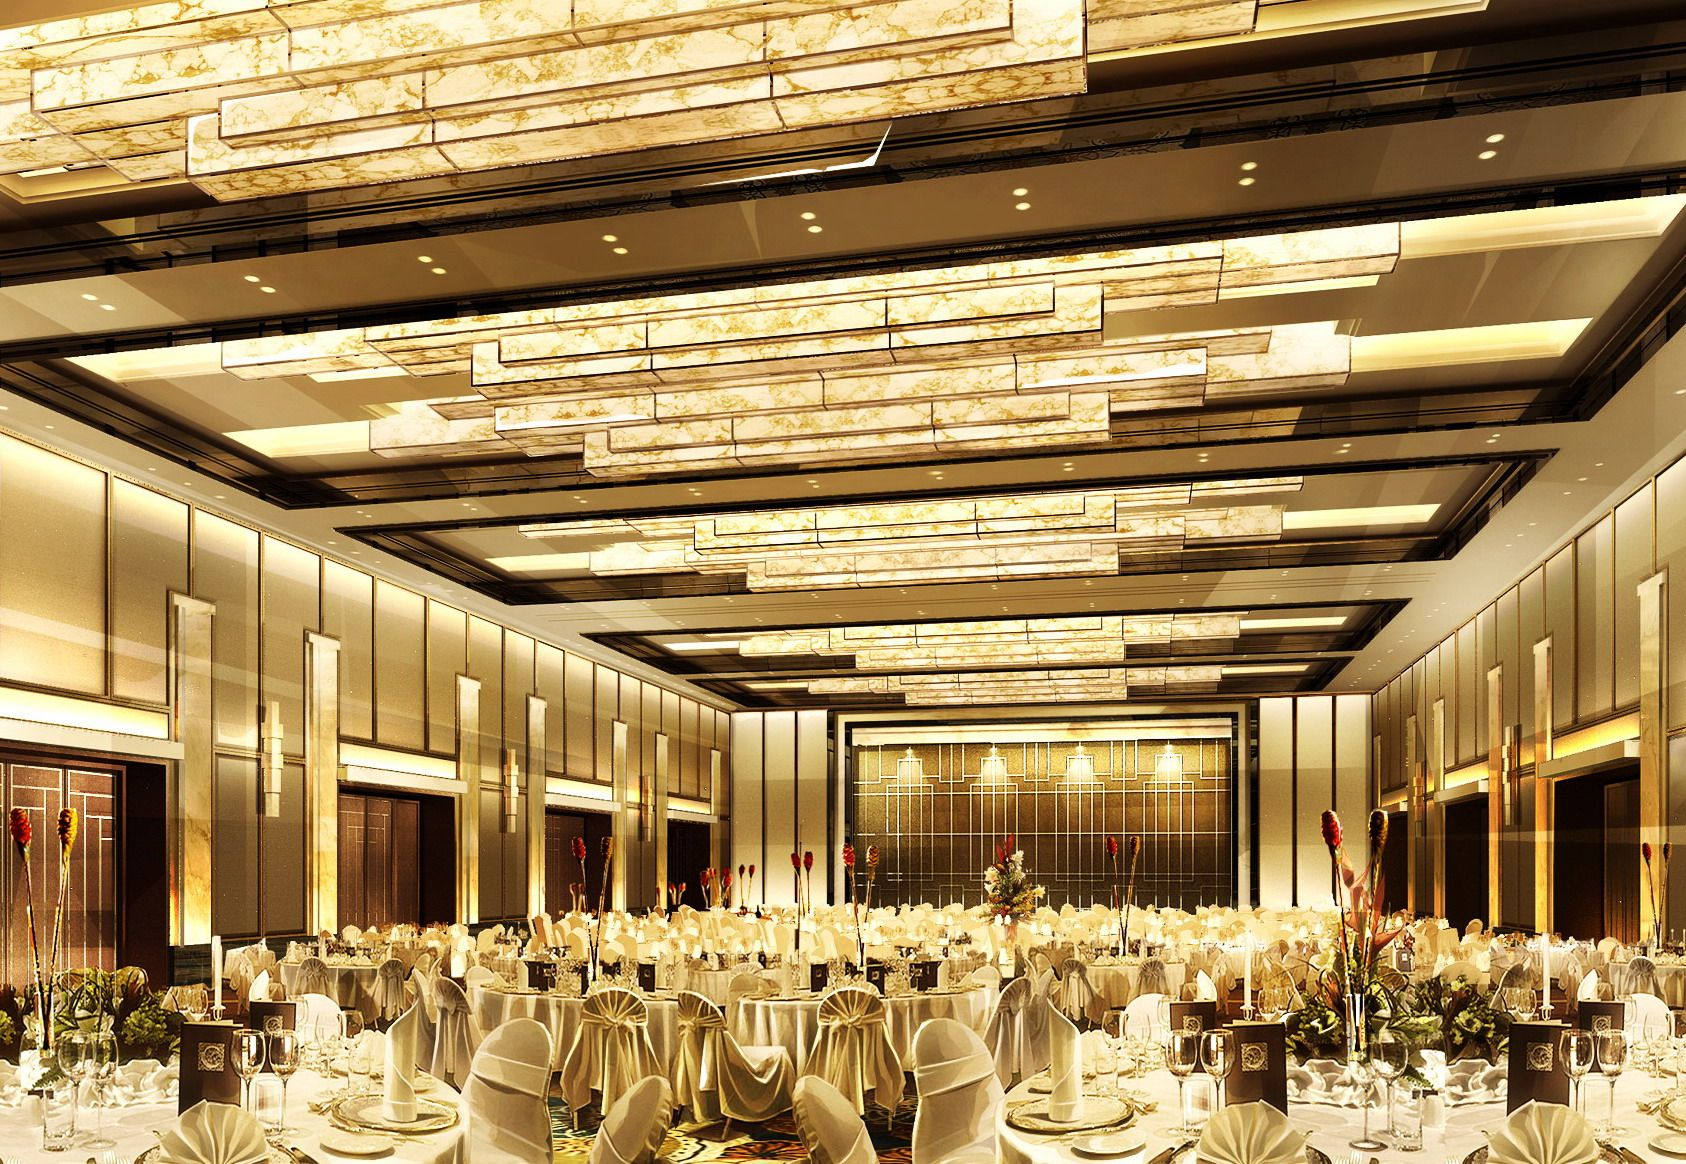 Ballroom Ceiling Design Size Of